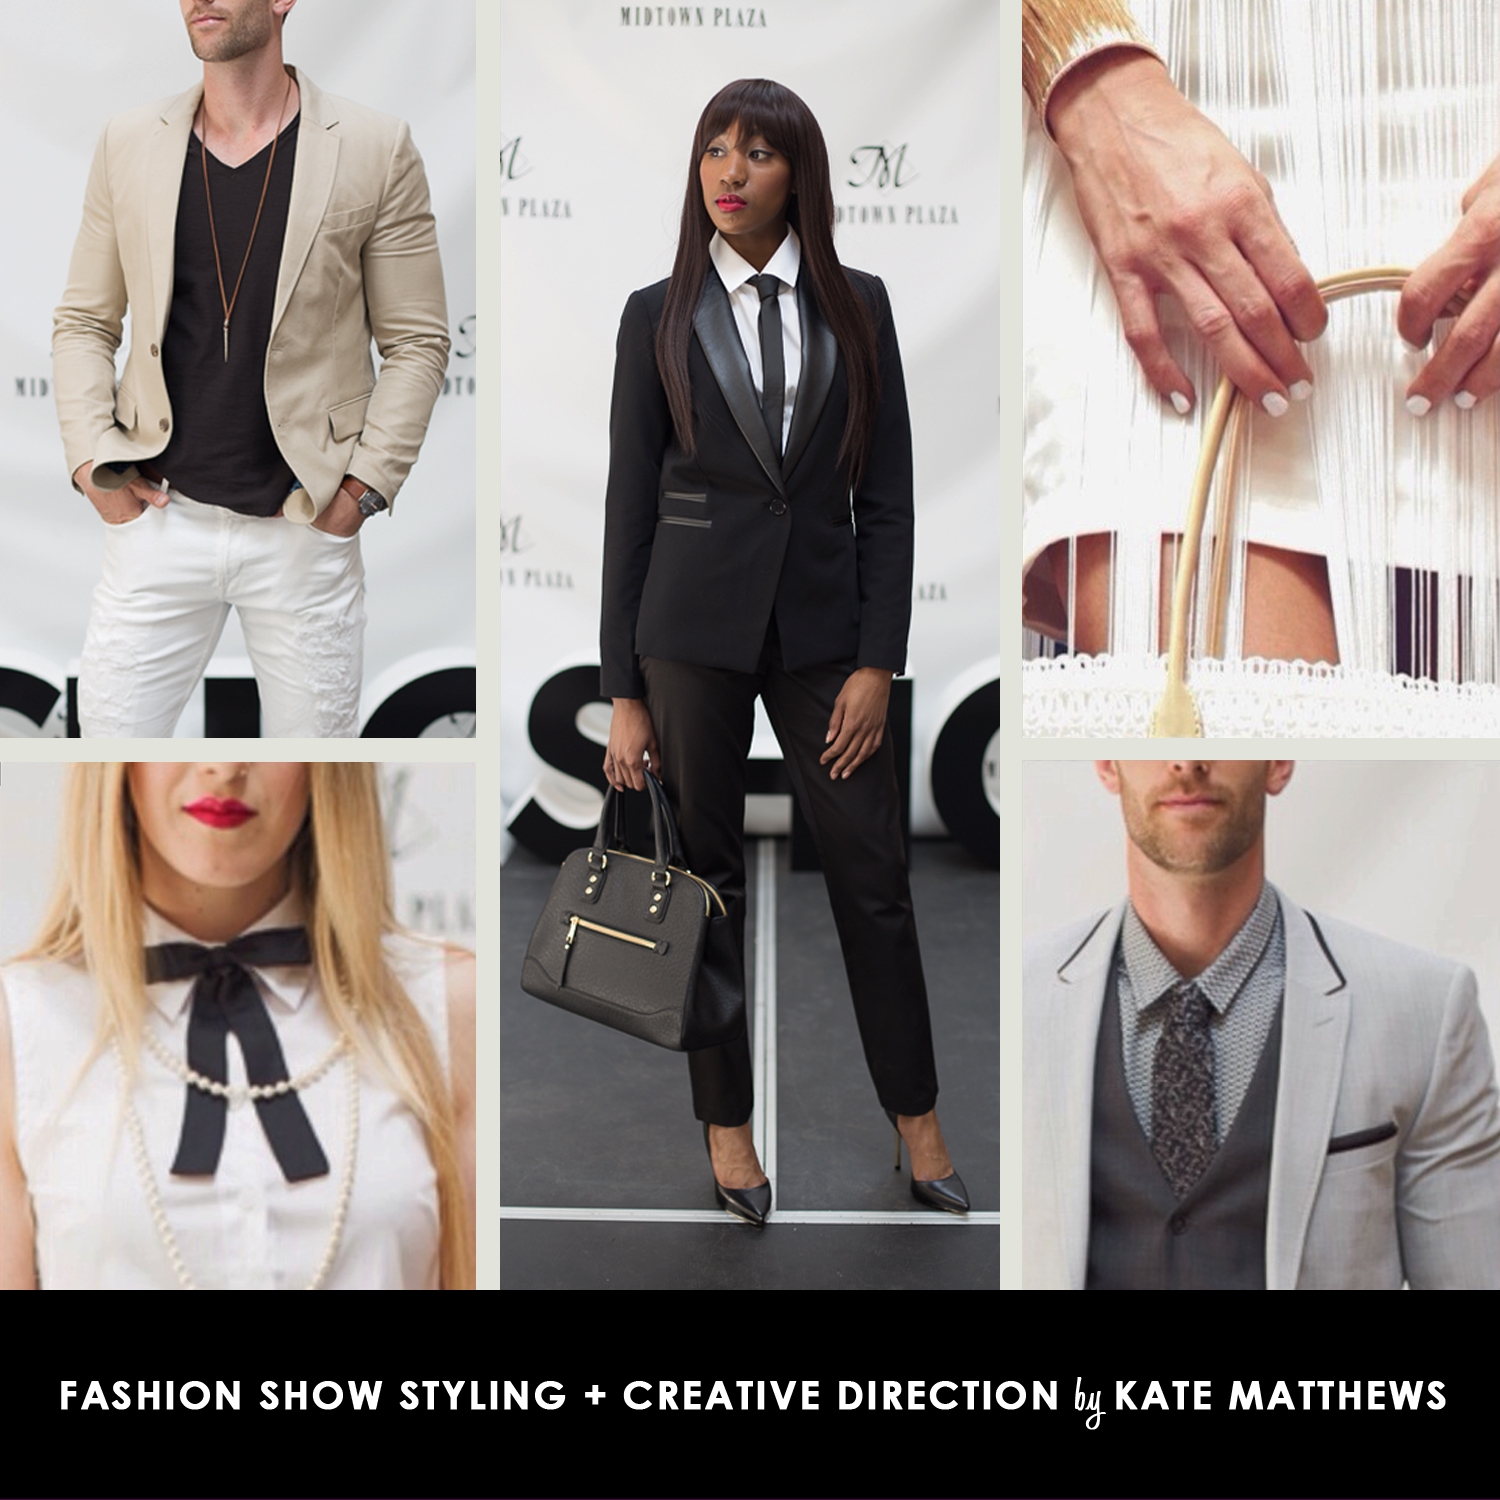 FASHION-SHOW-WEEK-WARDROBE-STYLIST-KATE-MATTHEWS-SFDF-SASKATOON